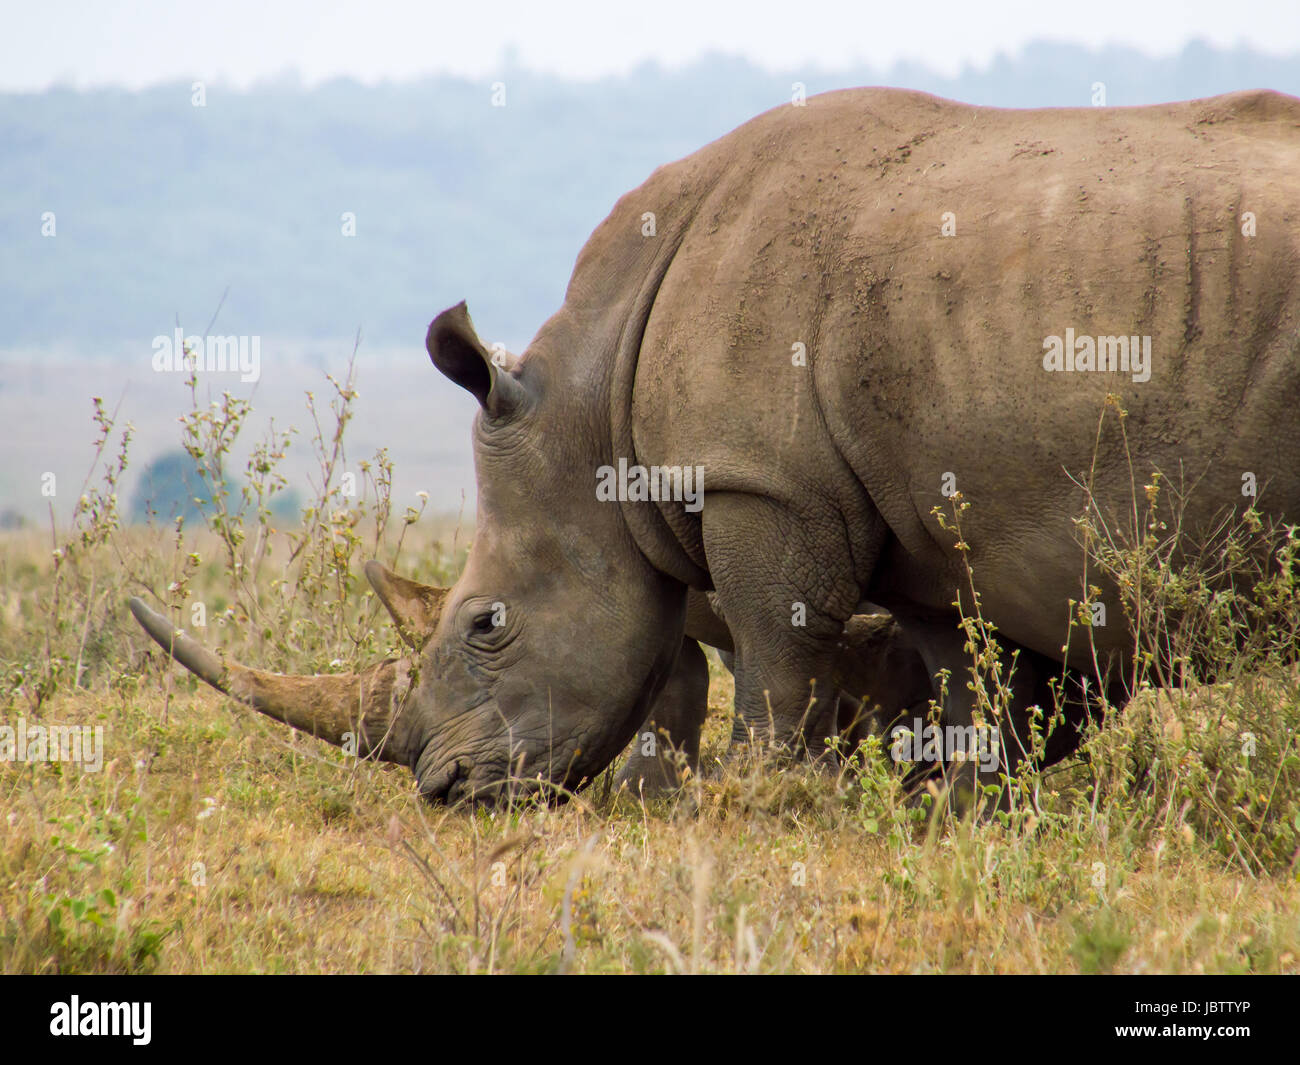 Rhinoceros Grazing in Nairobi National Park - Stock Image